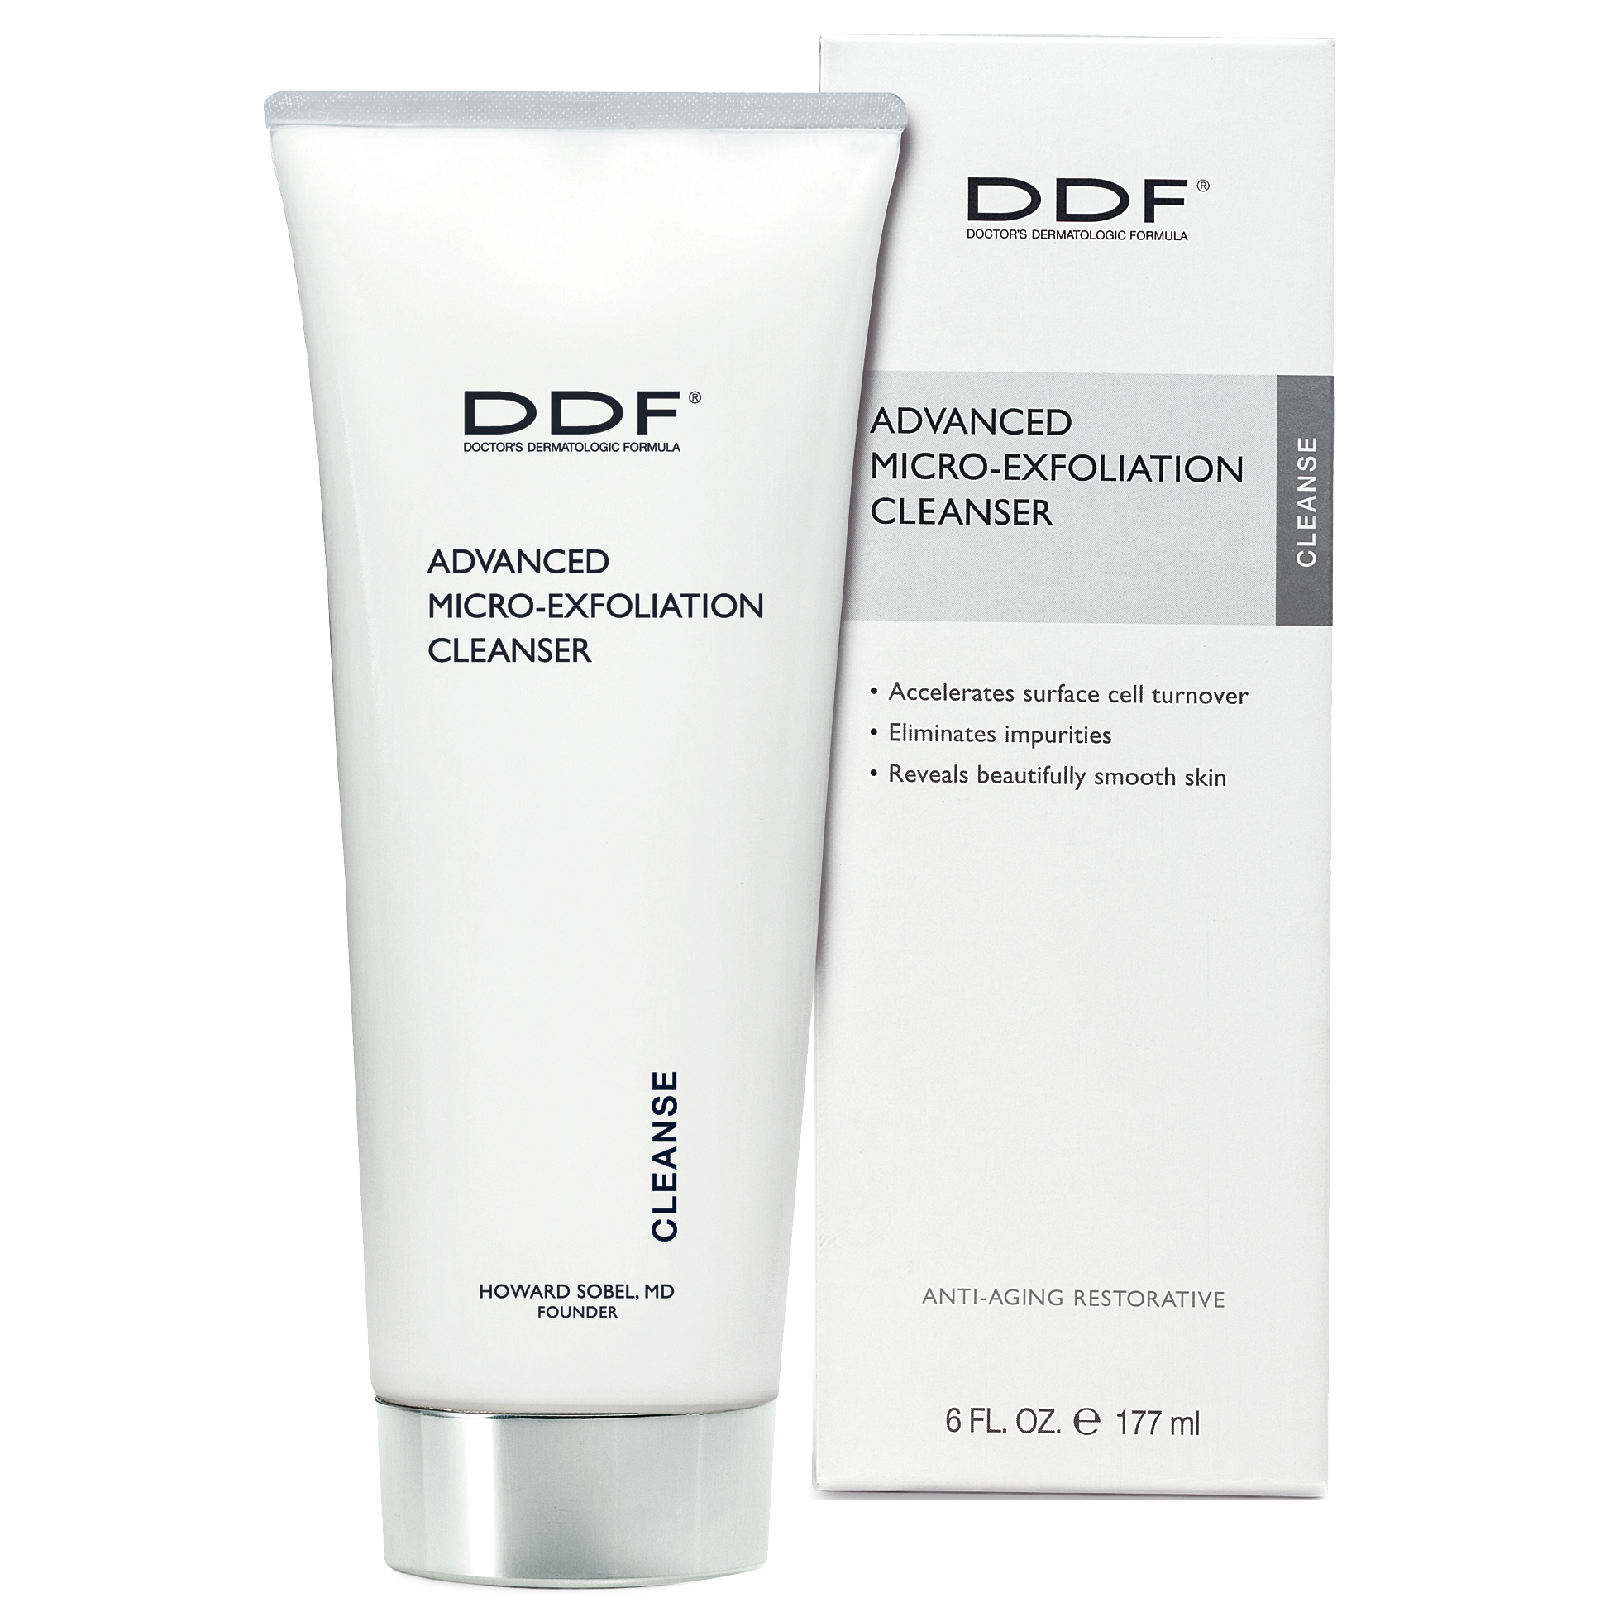 Congratulate, excellent ddf facial products cheaply got